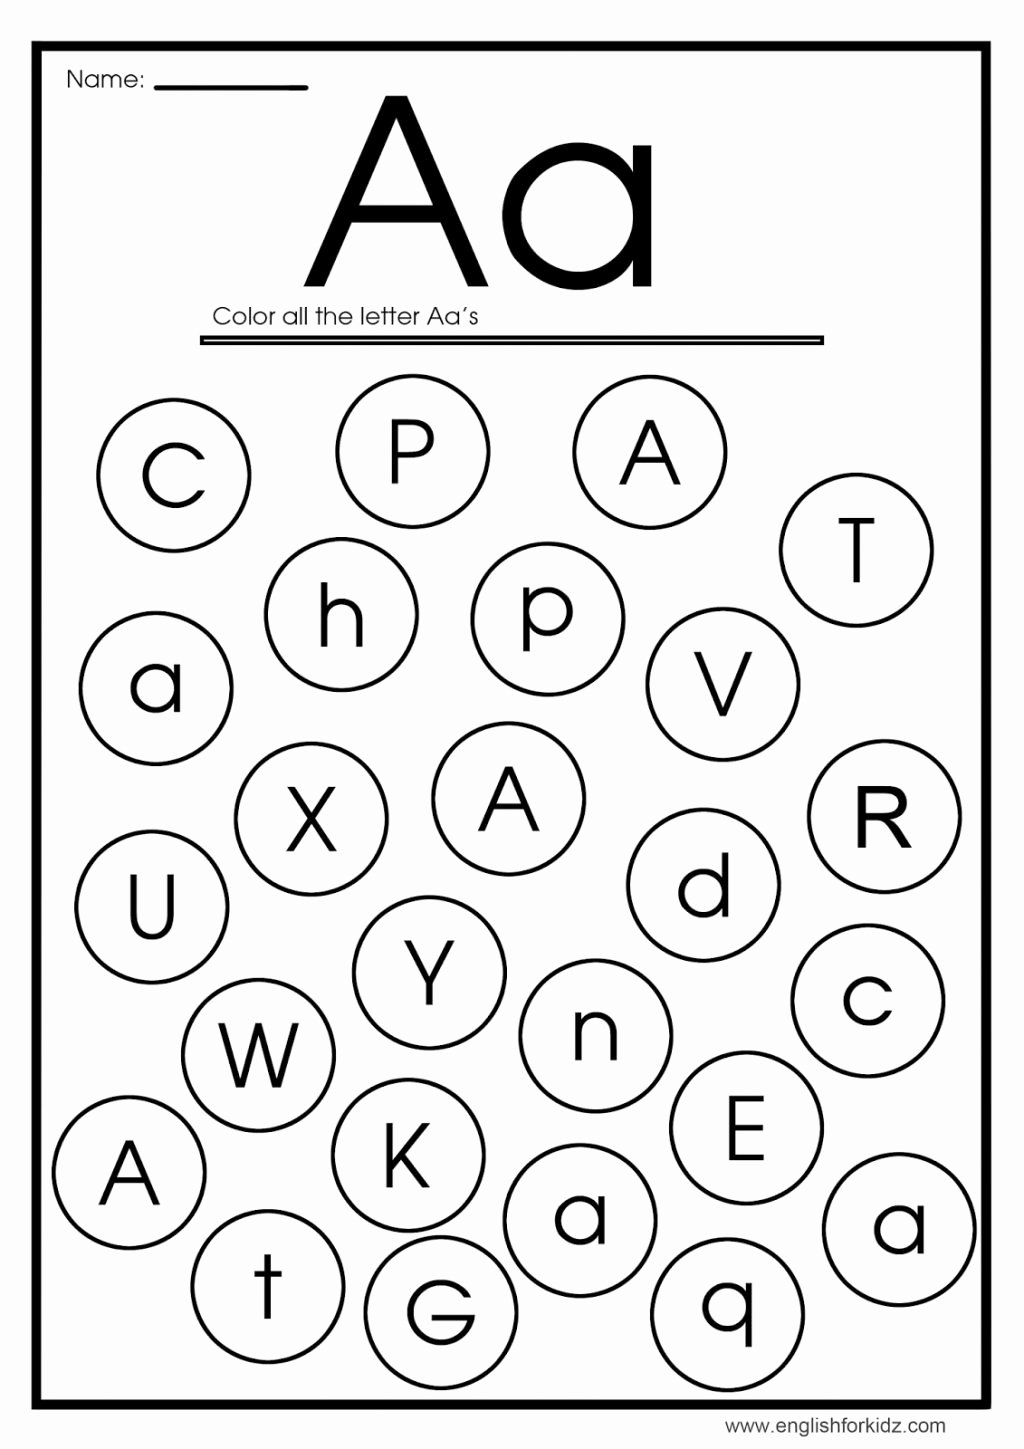 hight resolution of Worksheets for Preschoolers On Letters Awesome Worksheet Preschool Letter Worksheets  Worksheet Ideas Pdf – Printable Worksheets for Kids